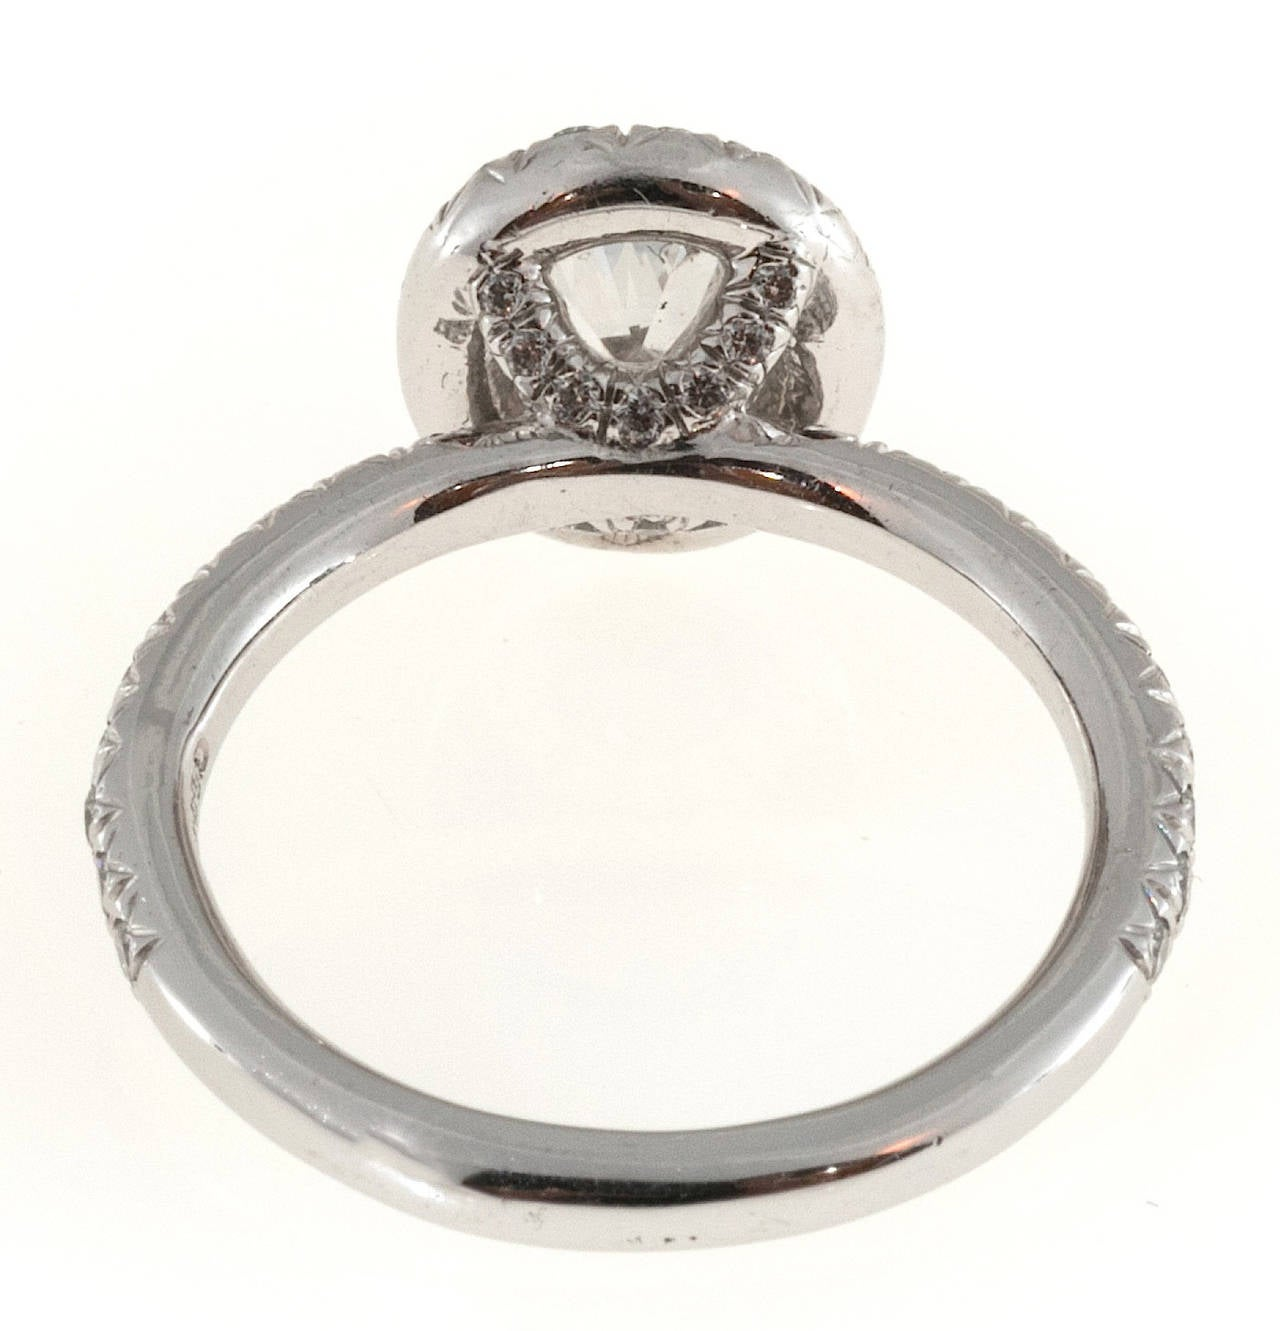 Kwiat Oval Diamond Micro Pave Platinum Ring 2